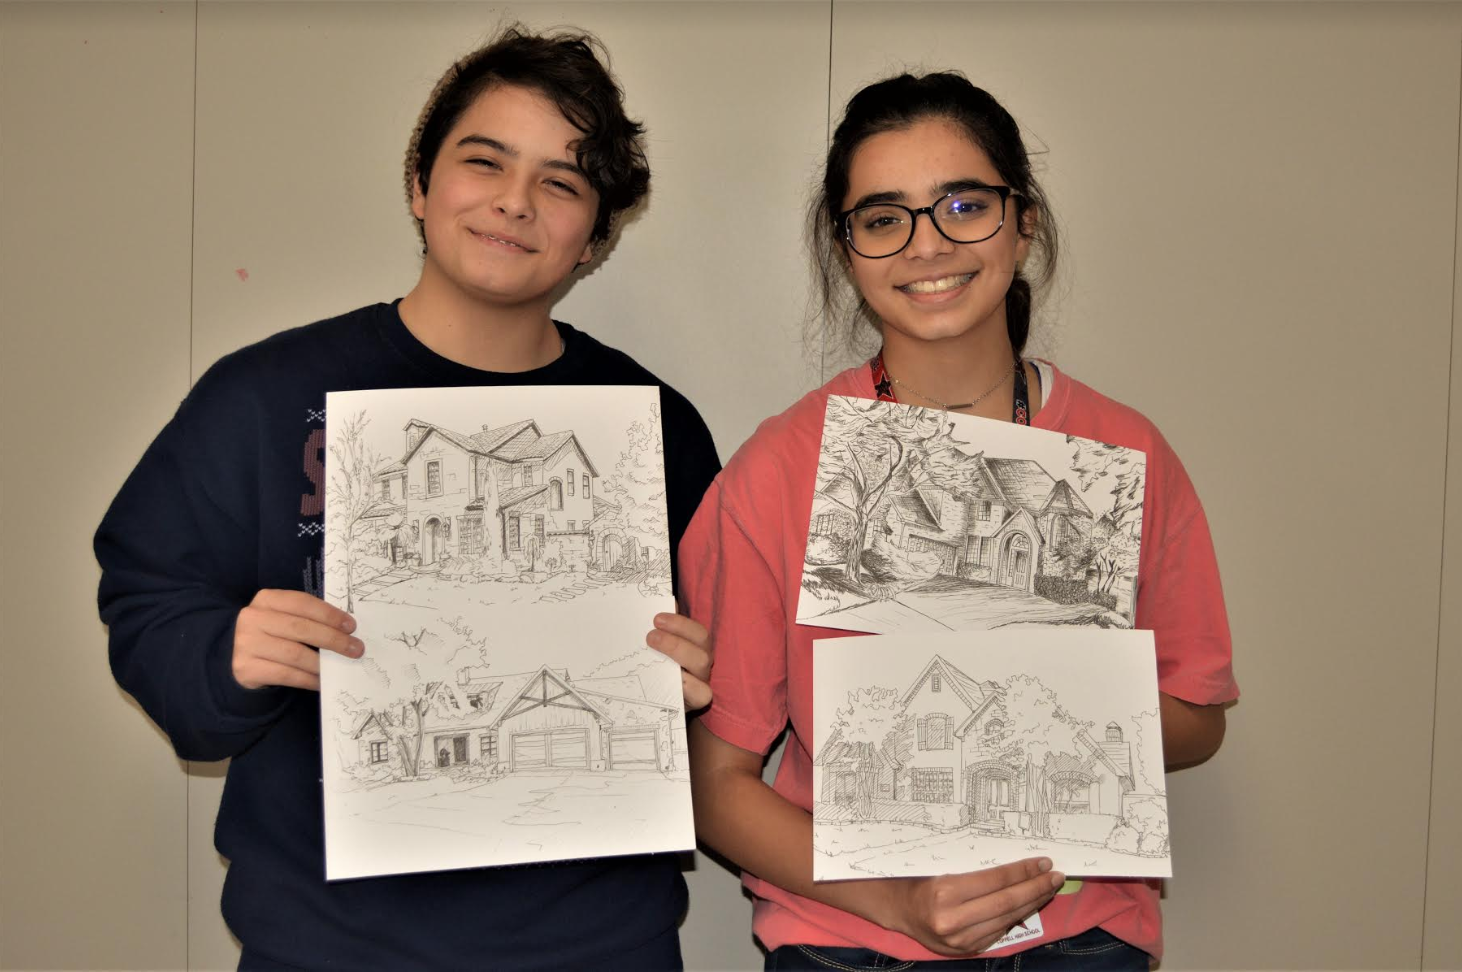 Coppell High School sophomores Catherine Fuselier and Swarangi Potdar display their art pieces for the Coppell home tour fundraiser. More than $24,000 was raised to help clothe 81 children in the area.